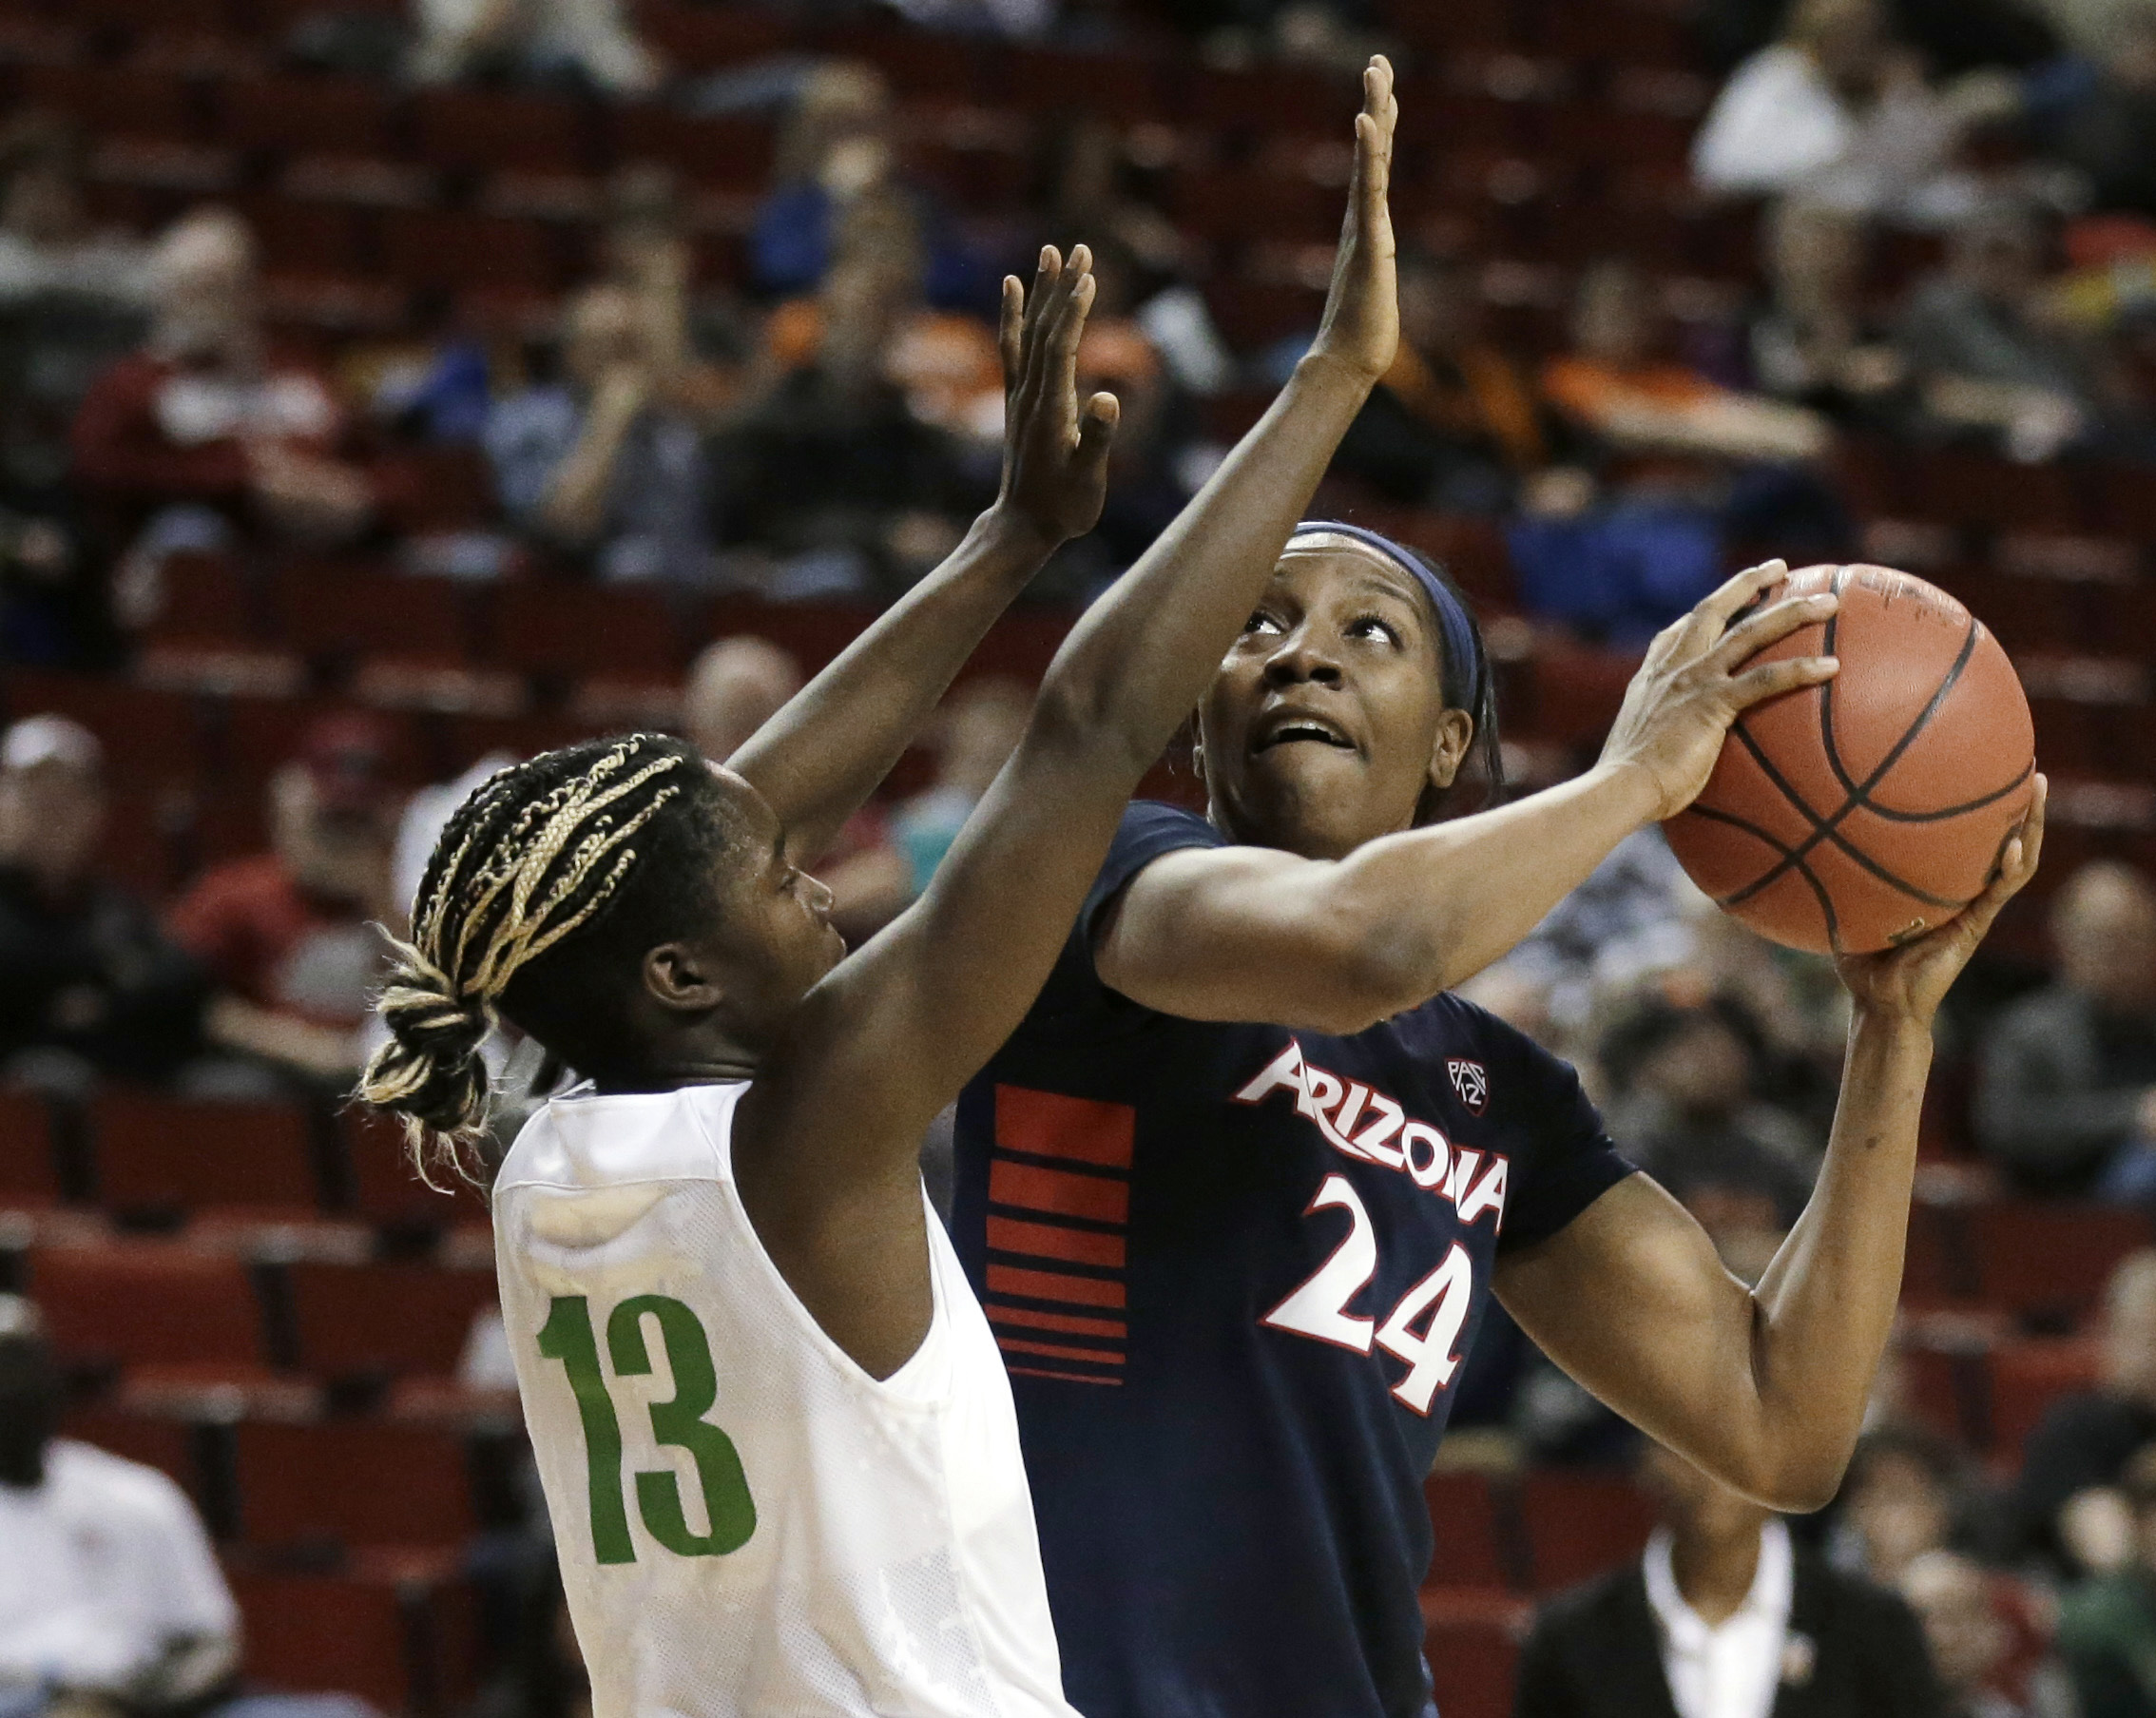 Arizona forward LaBrittney Jones (24) looks for a shot against Oregon guard Mar'Shay Moore (13) during the second half of an NCAA college basketball game in the Pac-12 women's tournament, Thursday, March 3, 2016, in Seattle. Arizona won 74-68. (AP Photo/T